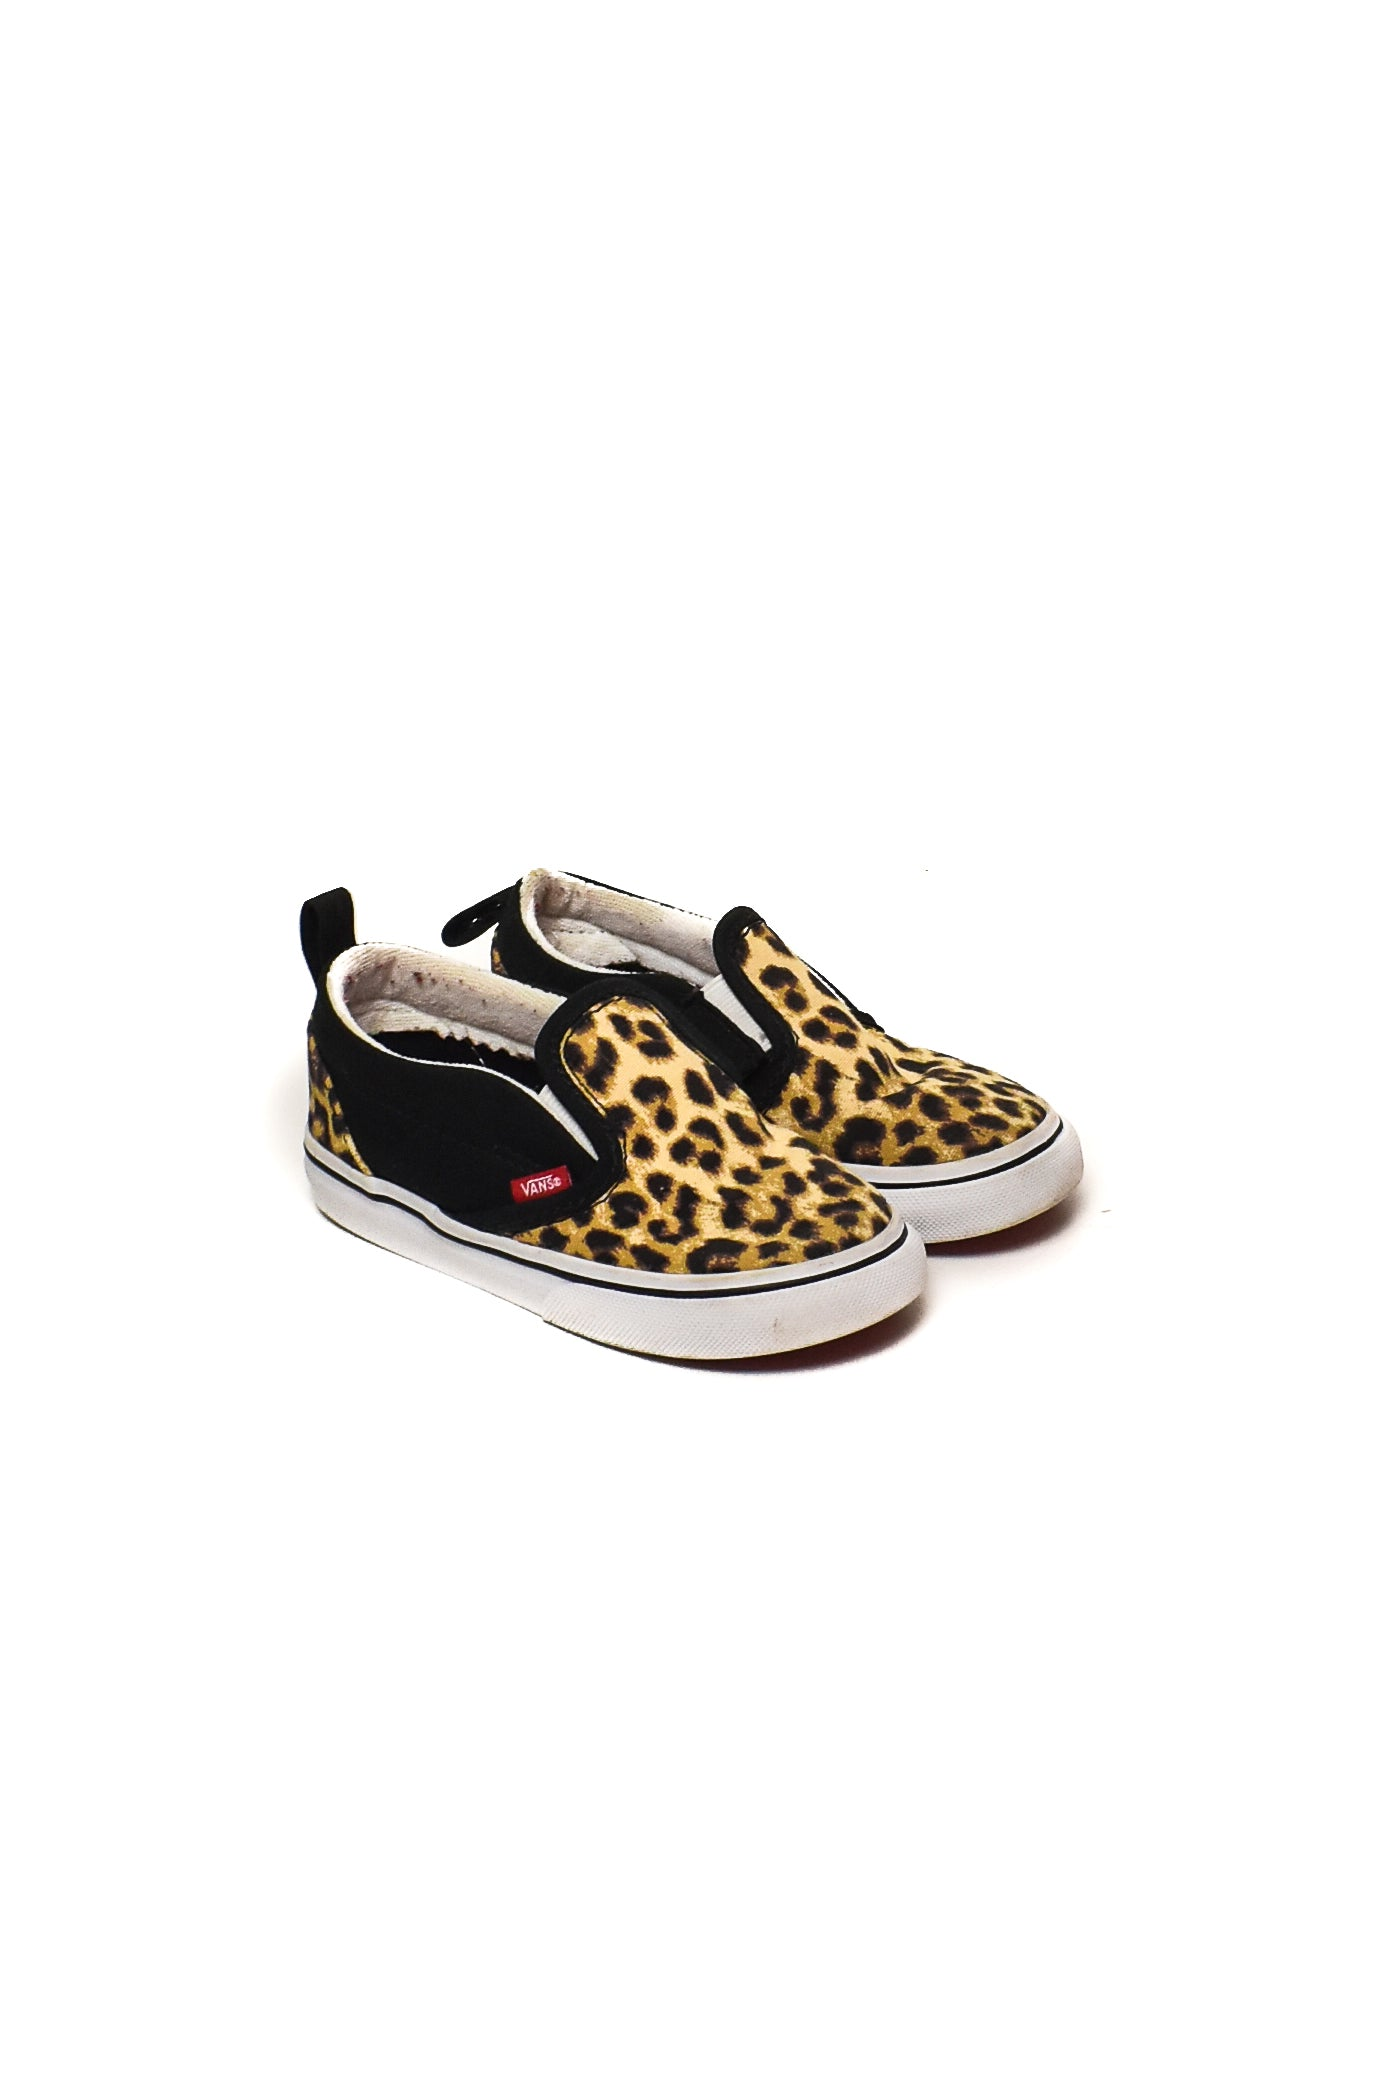 Vans at Retykle | Online Shopping Discount Baby & Kids Clothes Hong Kong